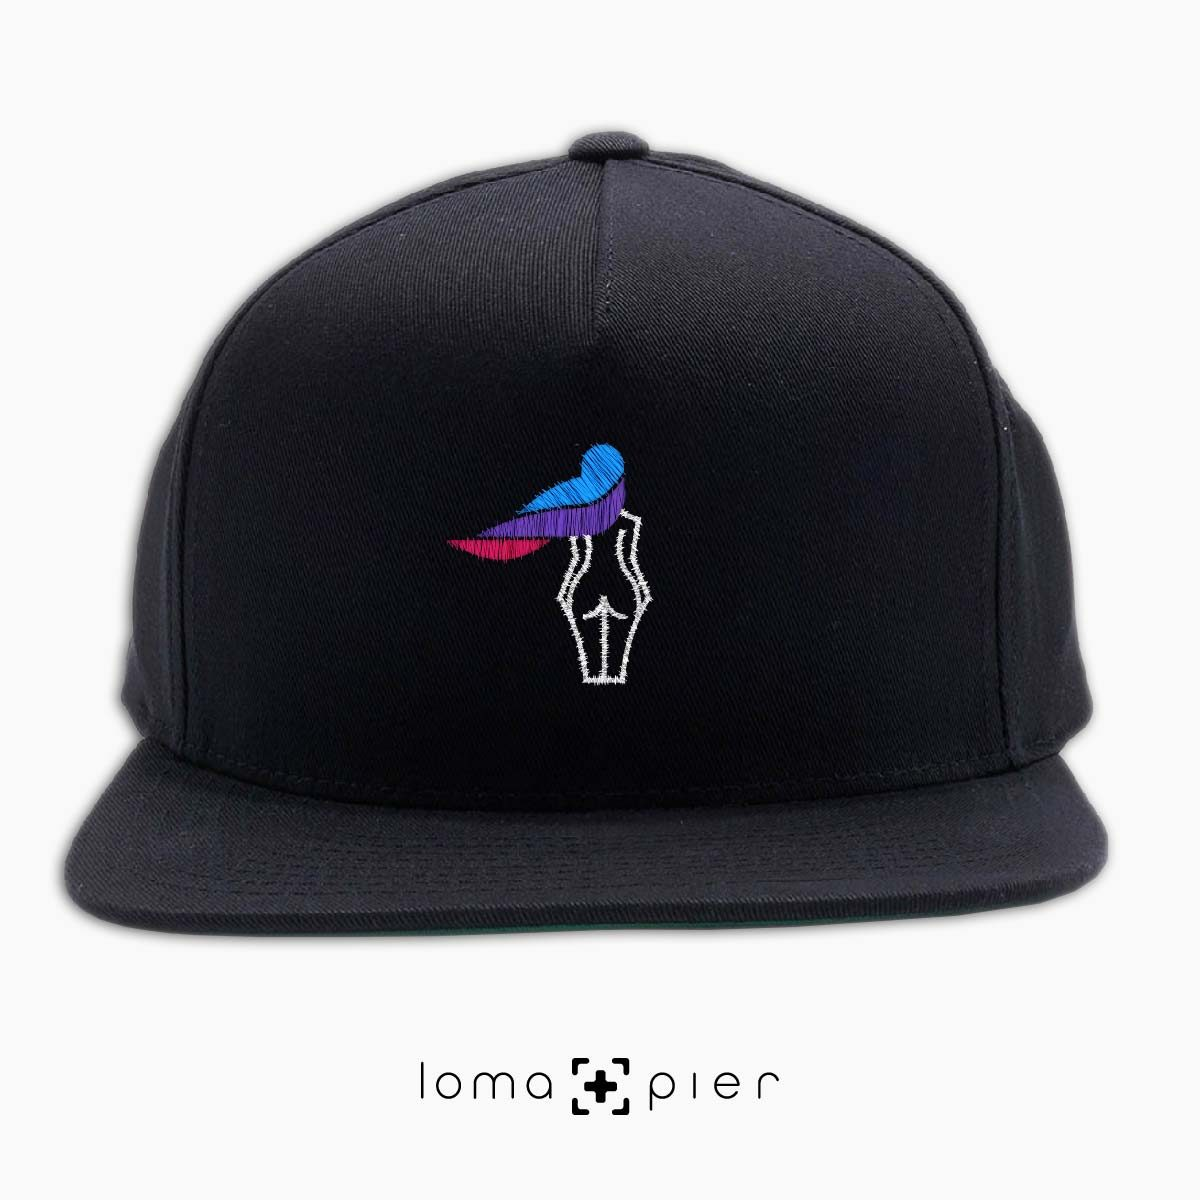 WAVY BEACH icon embroidered on a black classic snapback hat with multicolor thread by loma+pier hat store